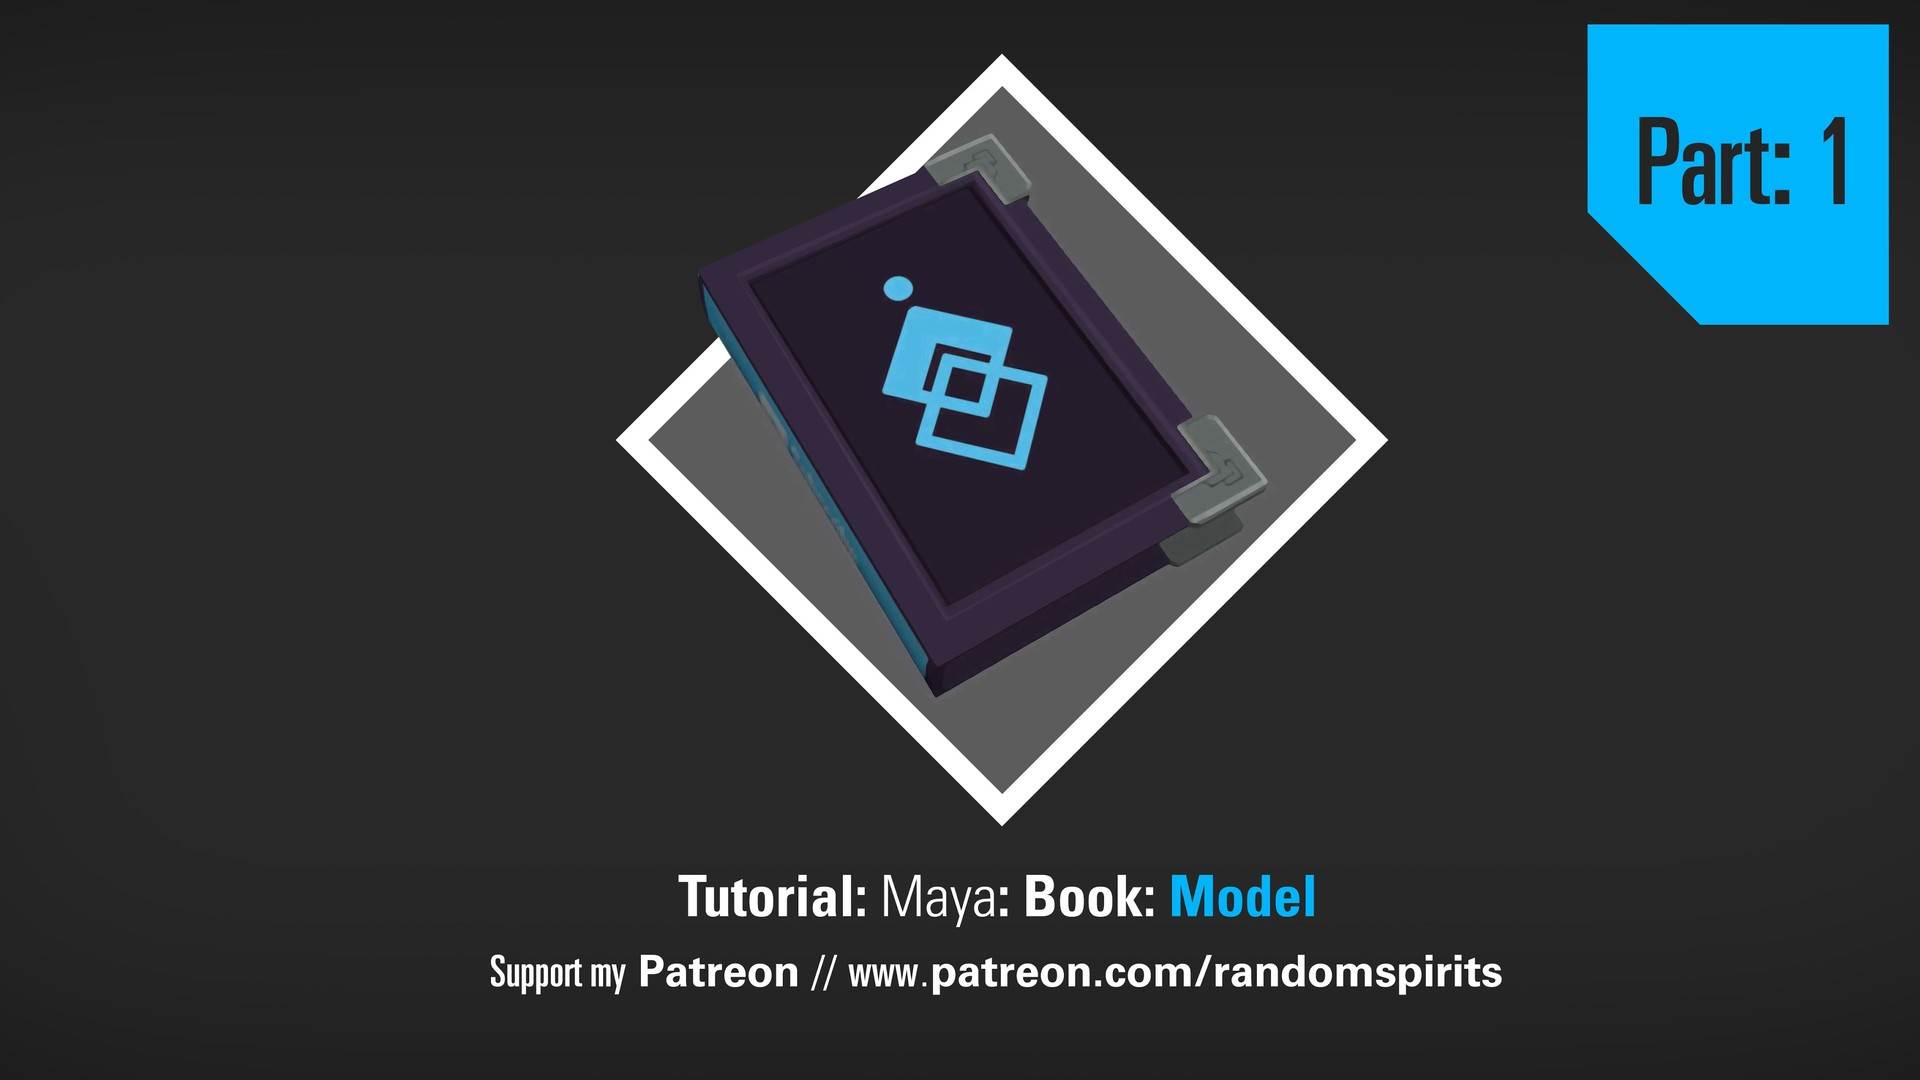 Low Poly Book Tutorial: Maya and Photoshop